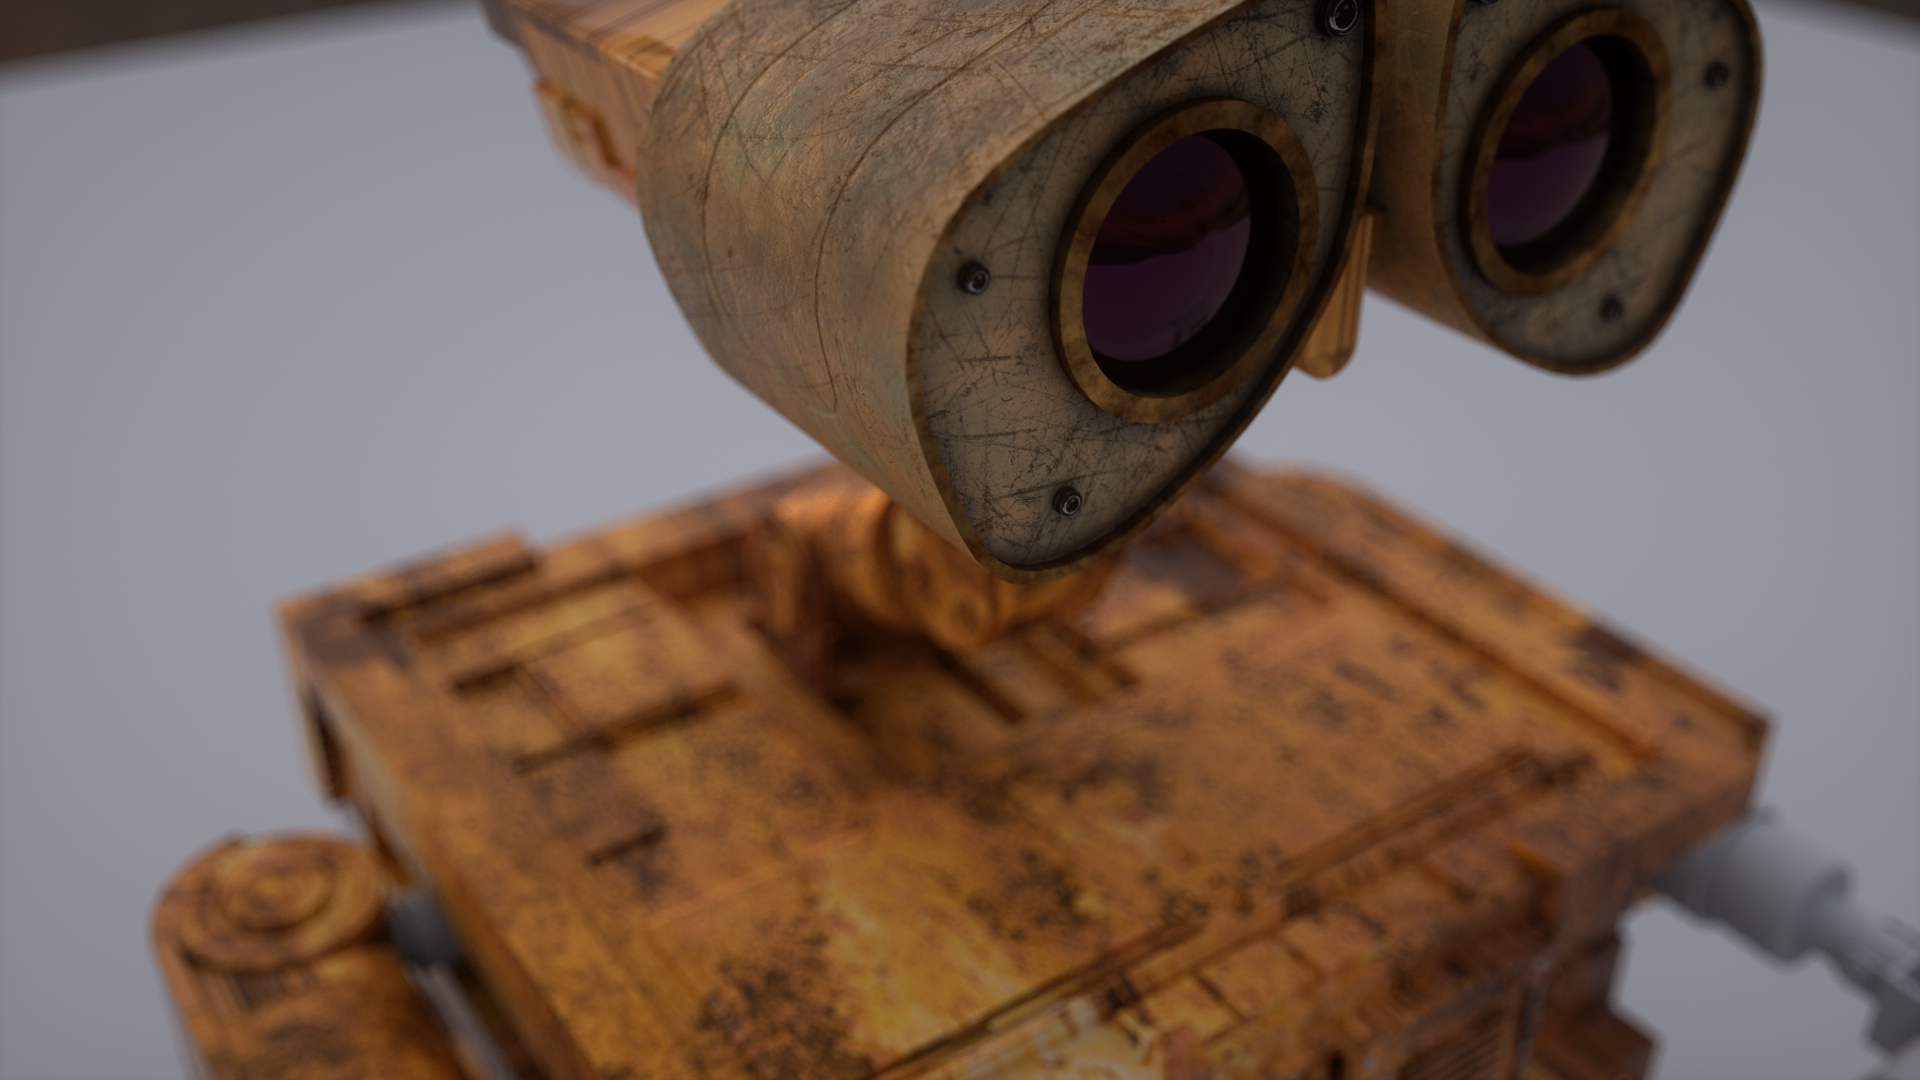 WALL-E (Procedural texturing, Octane Render)